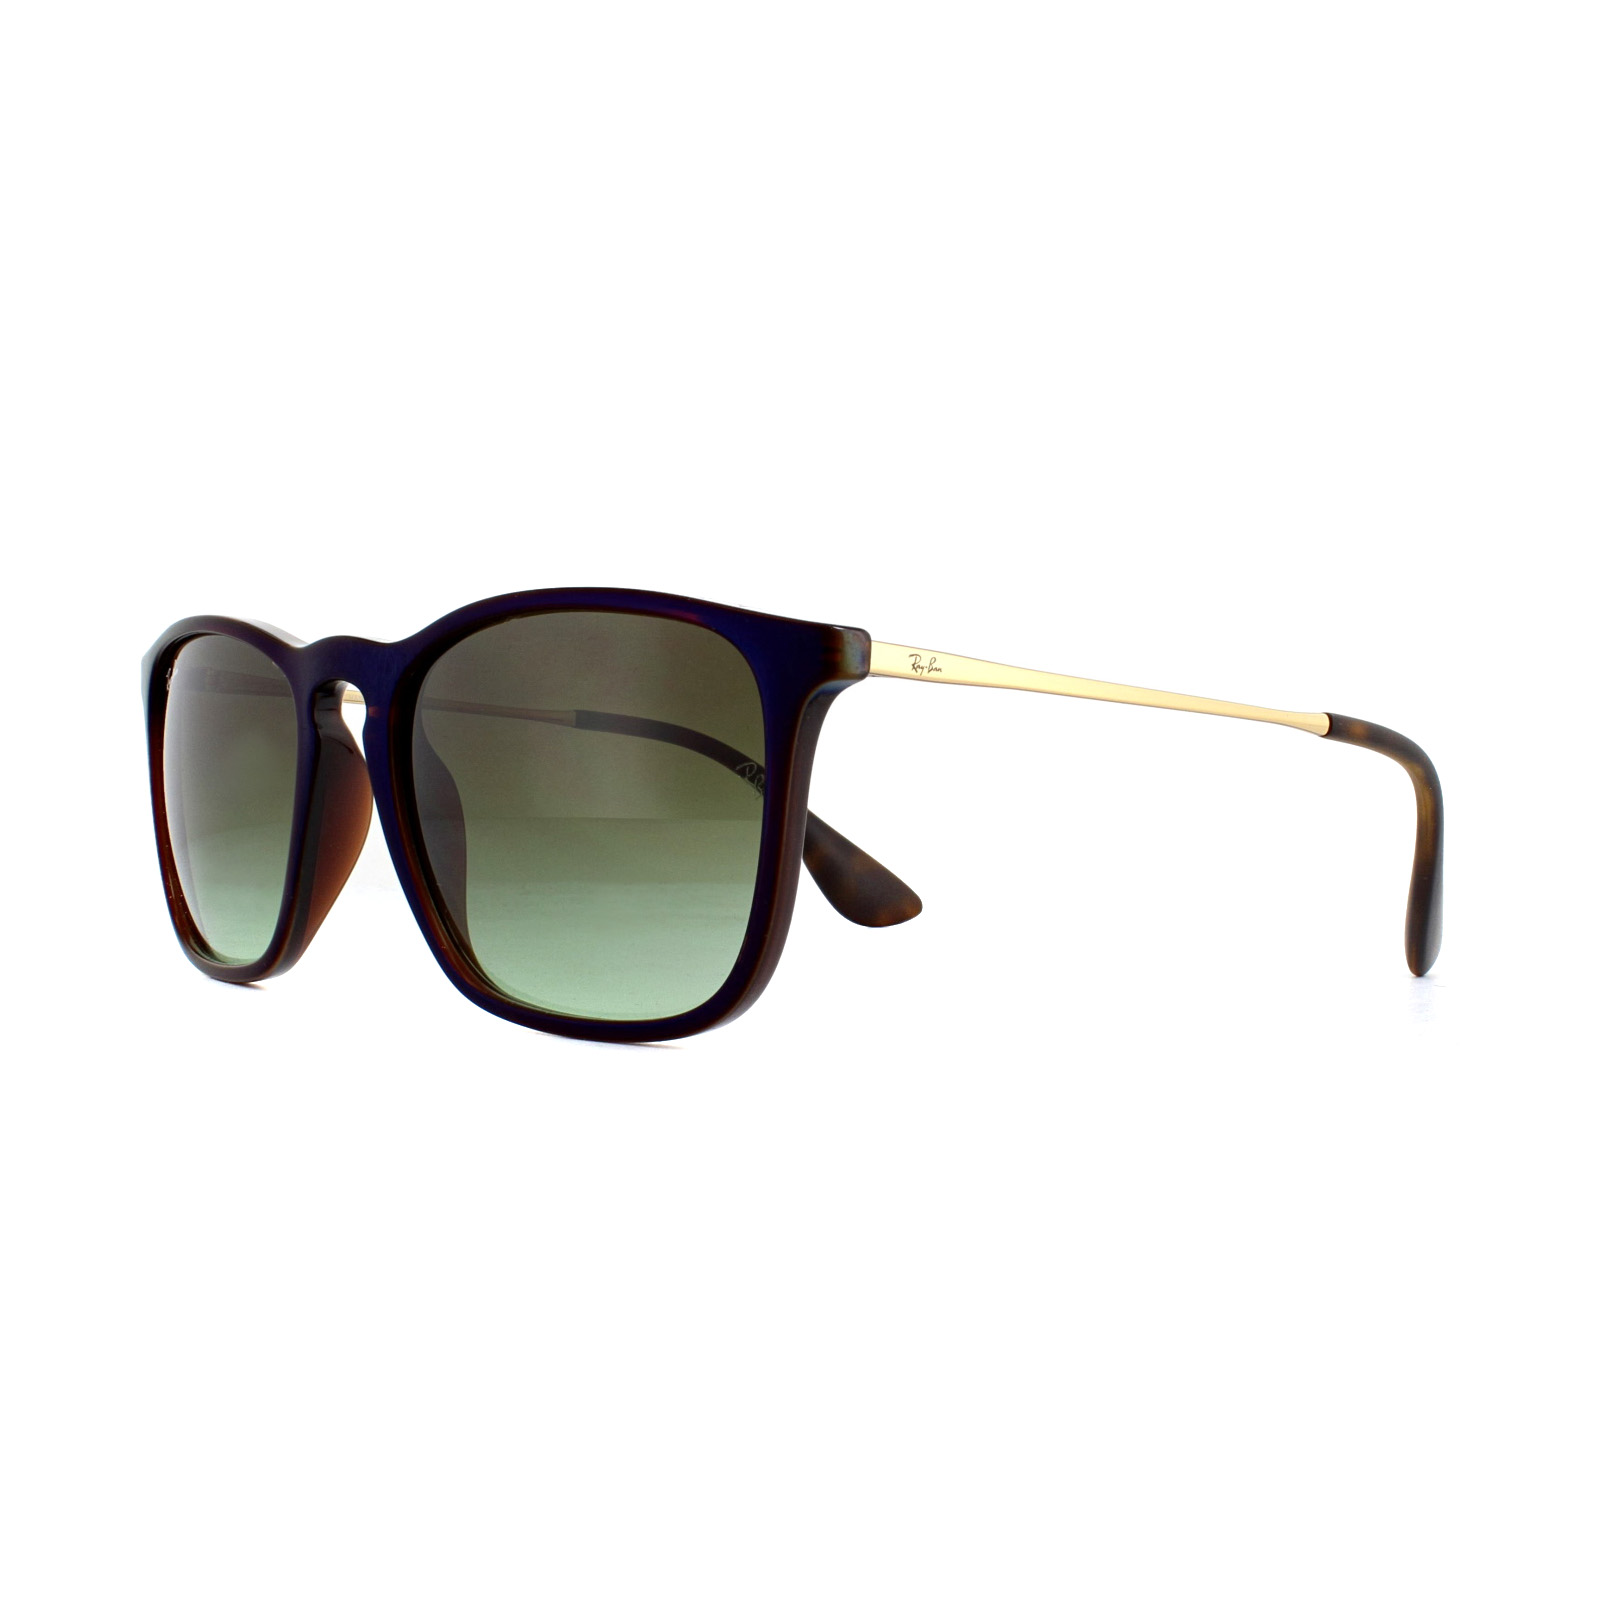 2cc34fa77d Sentinel Ray-Ban Sunglasses Chris 4187 6315E8 Transparent Brown Green Brown  Gradient